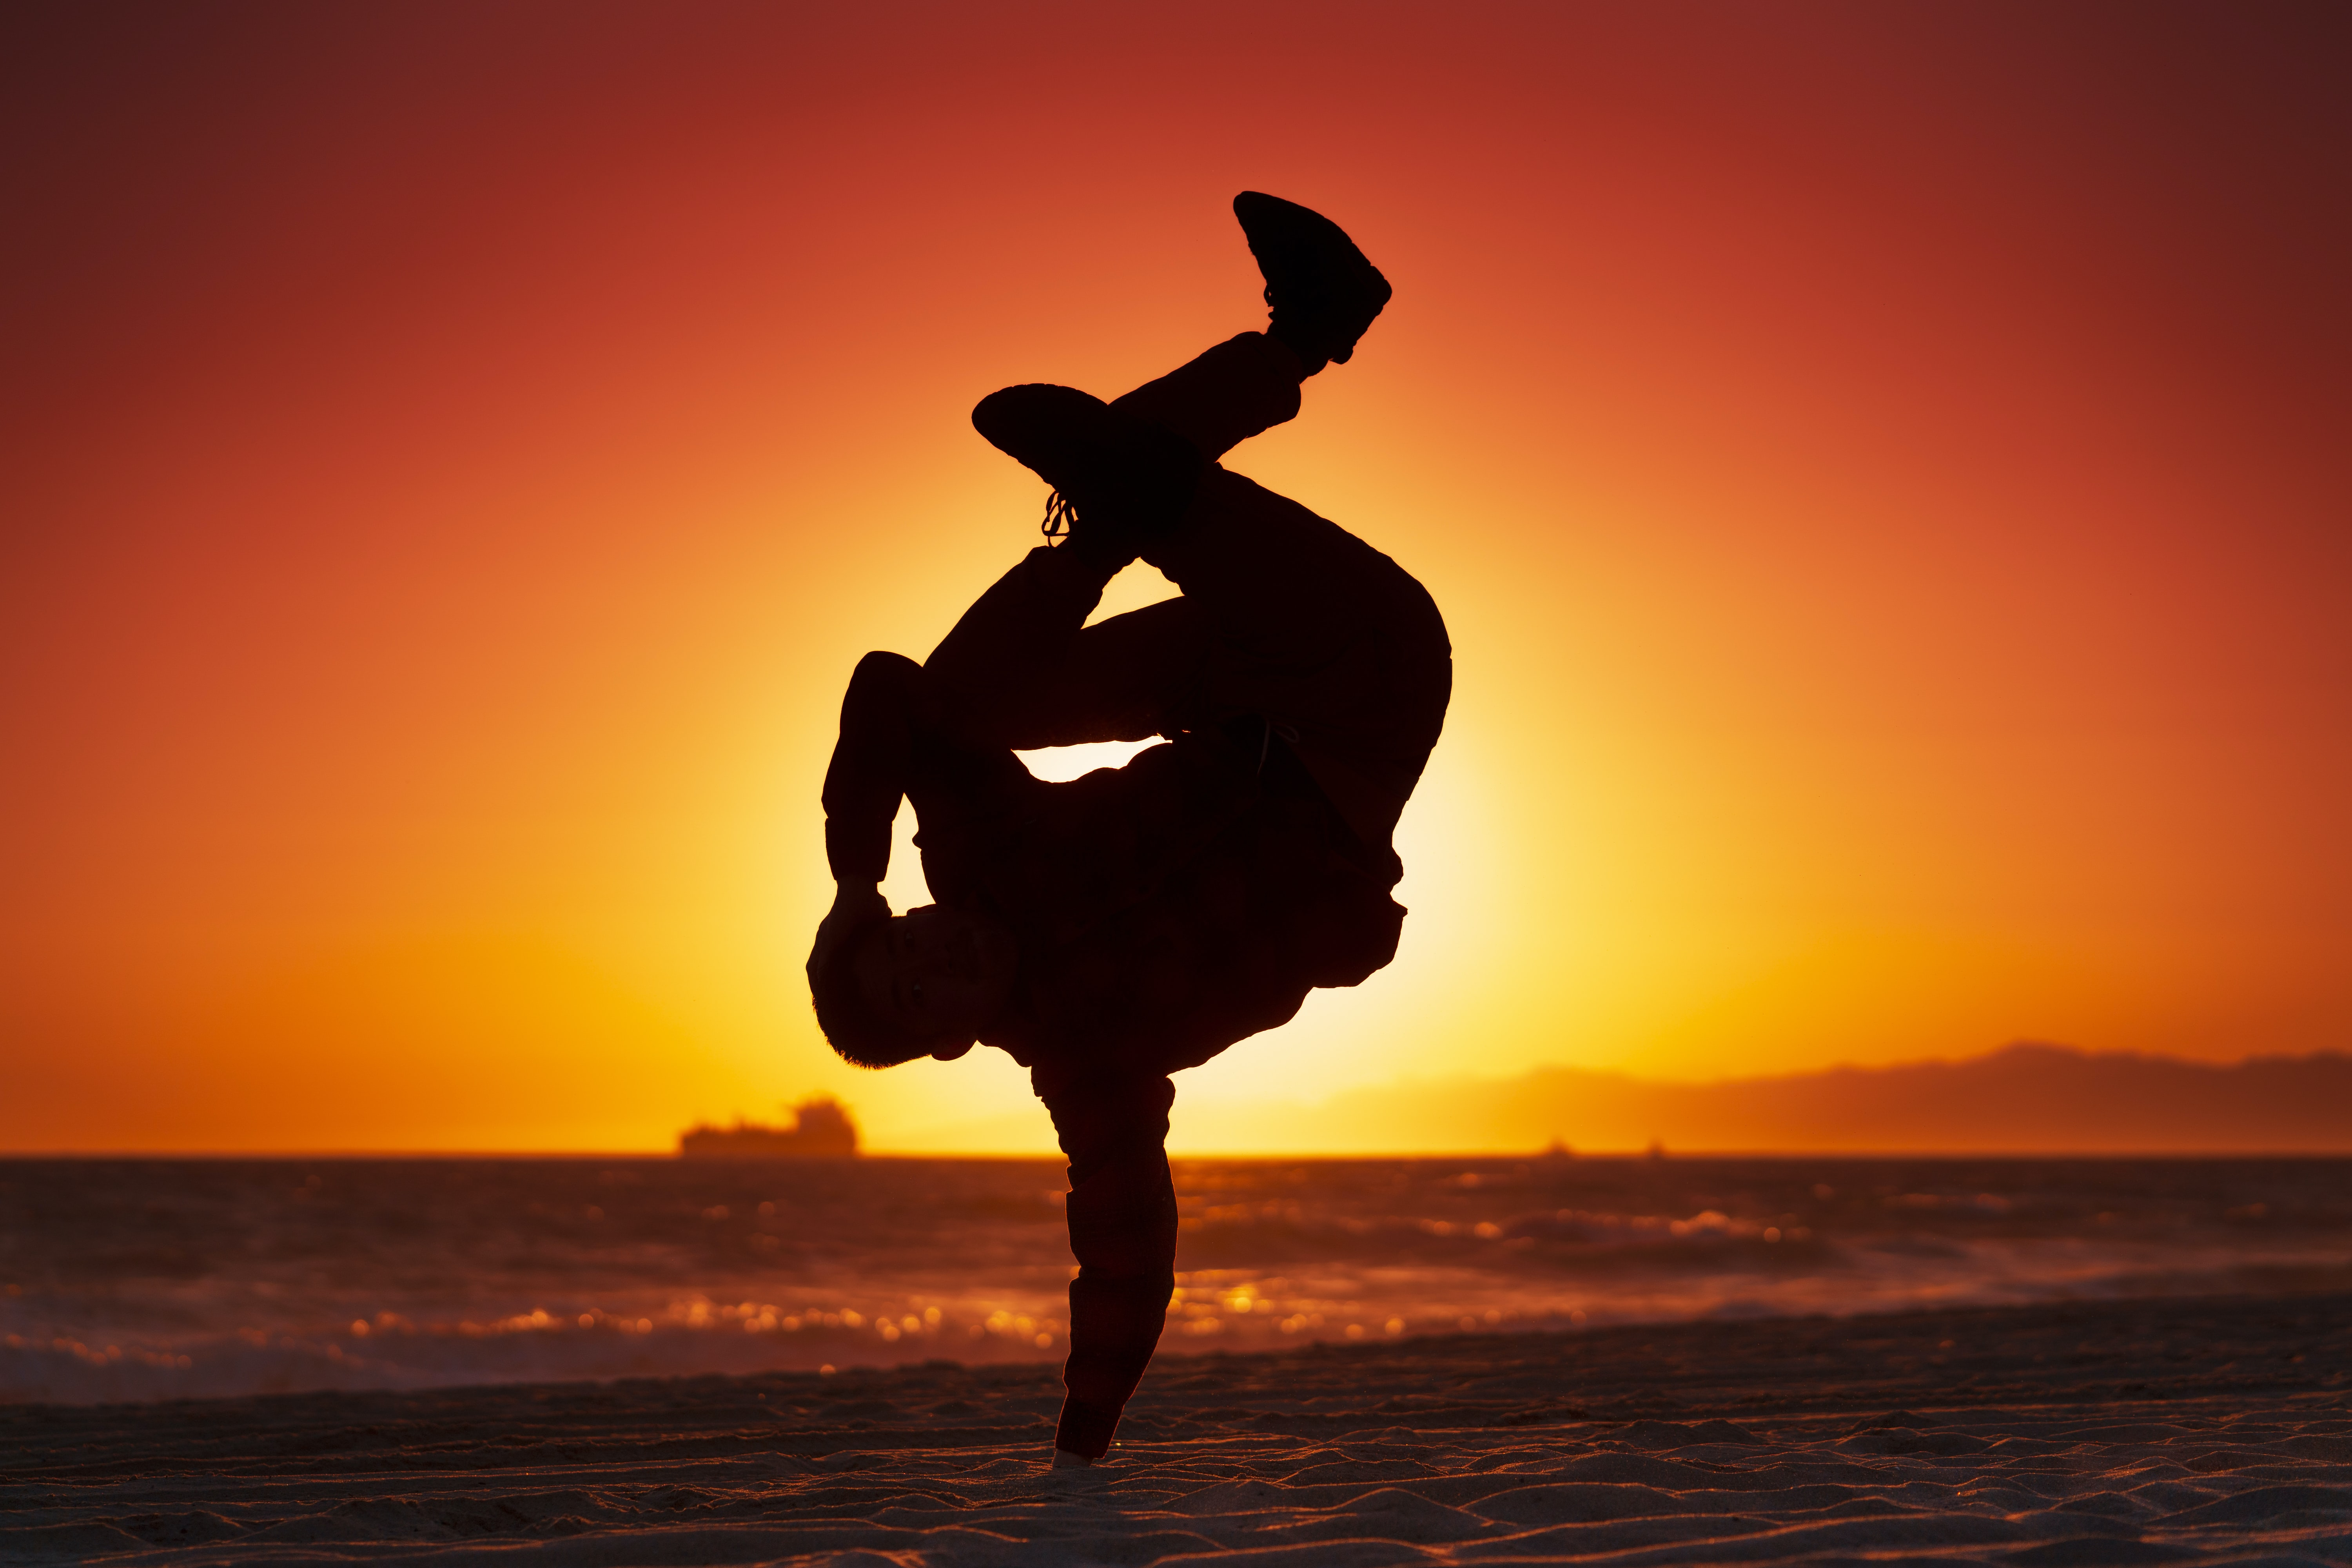 silhouette of man making a handstand